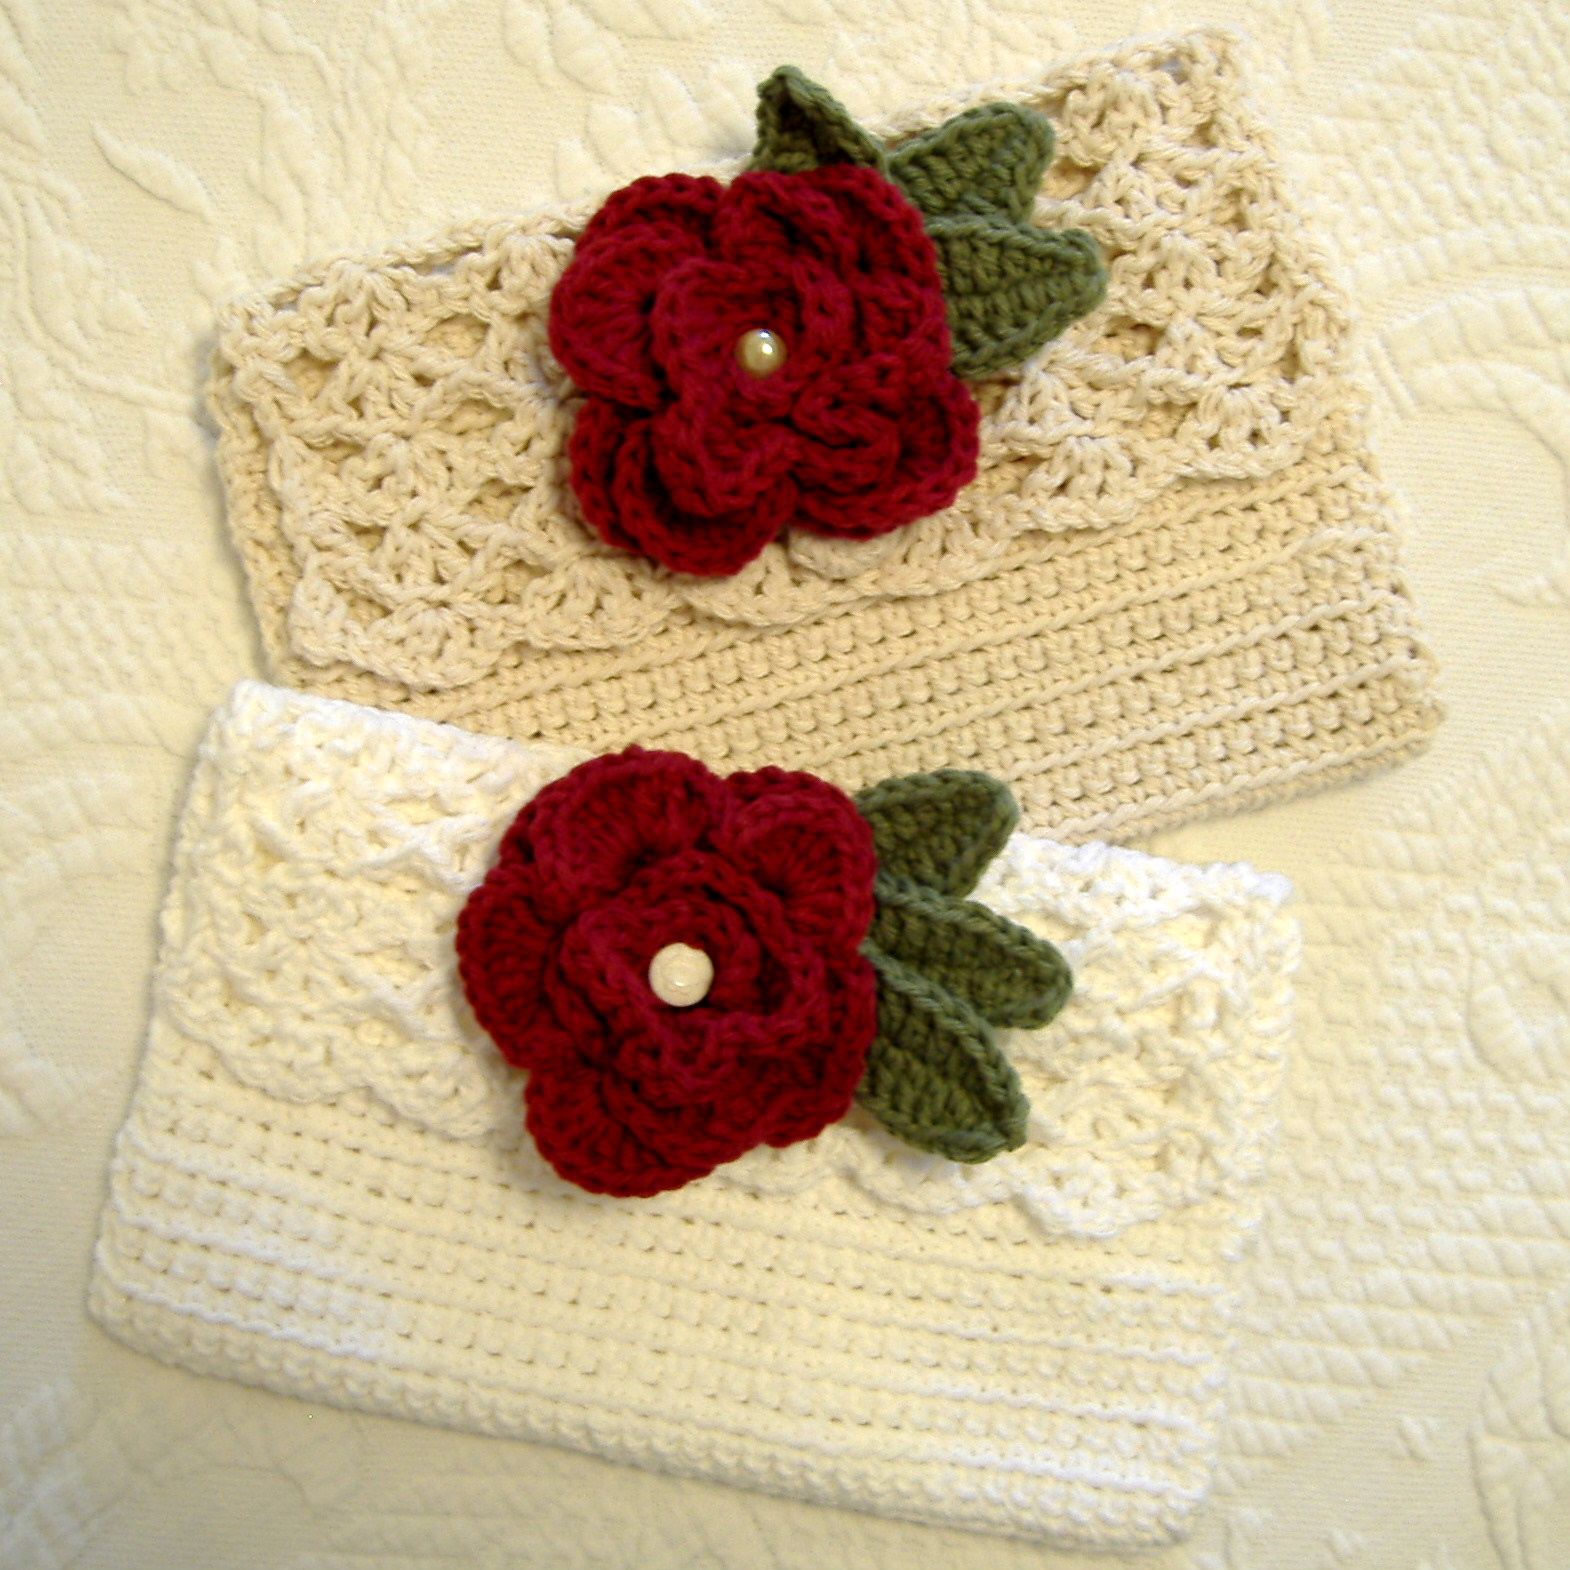 FREE CROCHETED HANDBAG PATTERN - Crochet - Learn How to Crochet